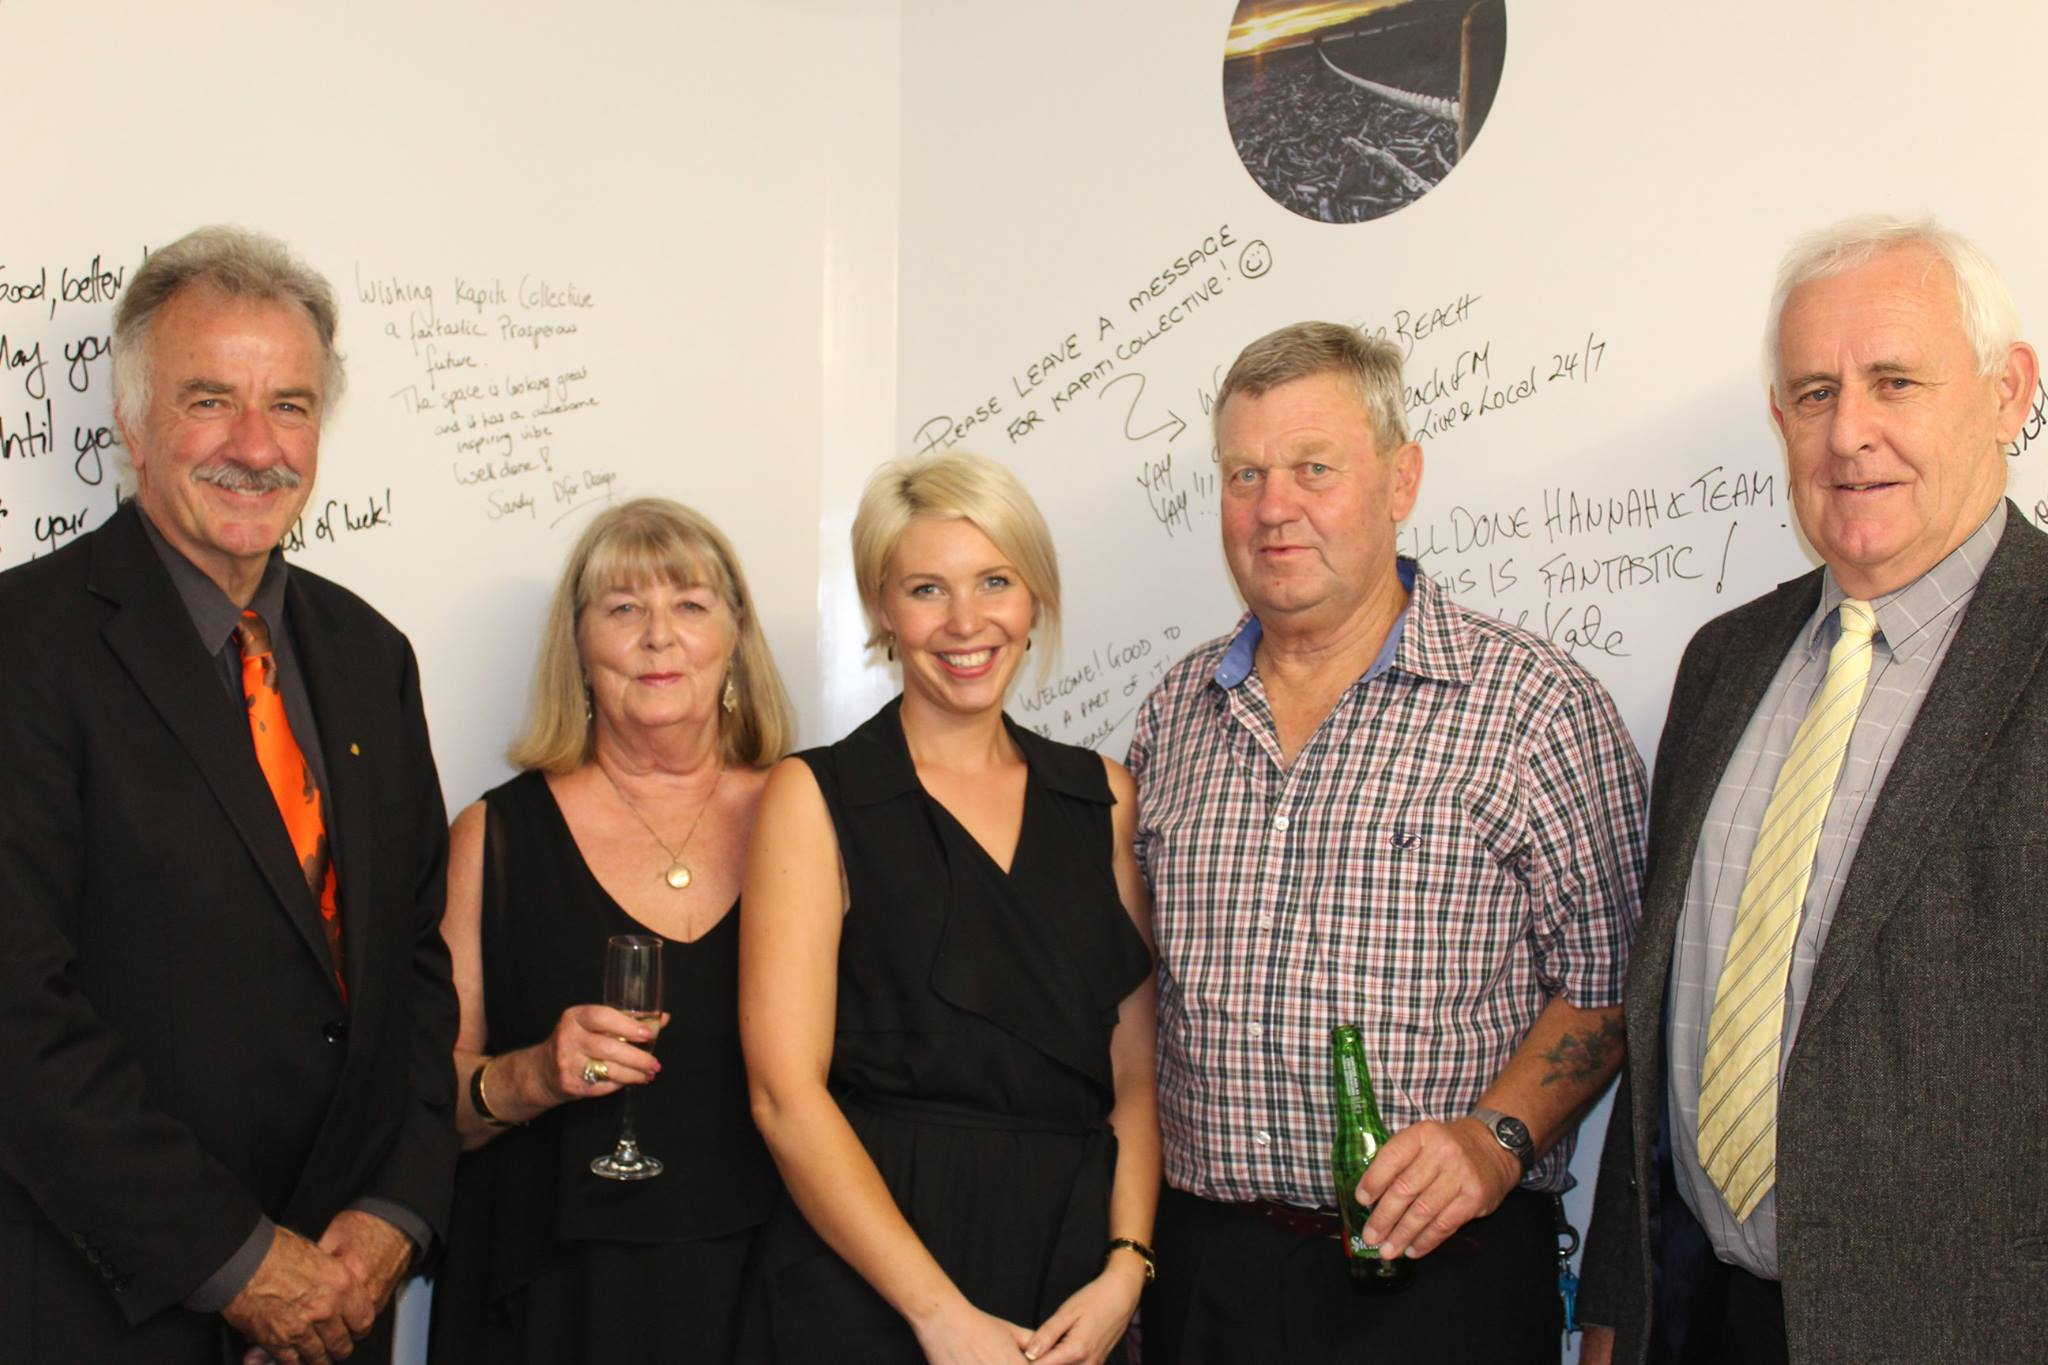 Opening night of Kapiti Collective. From left: Ross Church (Kapiti's mayor at the time), my mother Anne Delaney, me, my father, Paddy Delaney, and Dad's friend and Kapiti Collective neighbour at Quinovic Property Management, Bernard Parker.